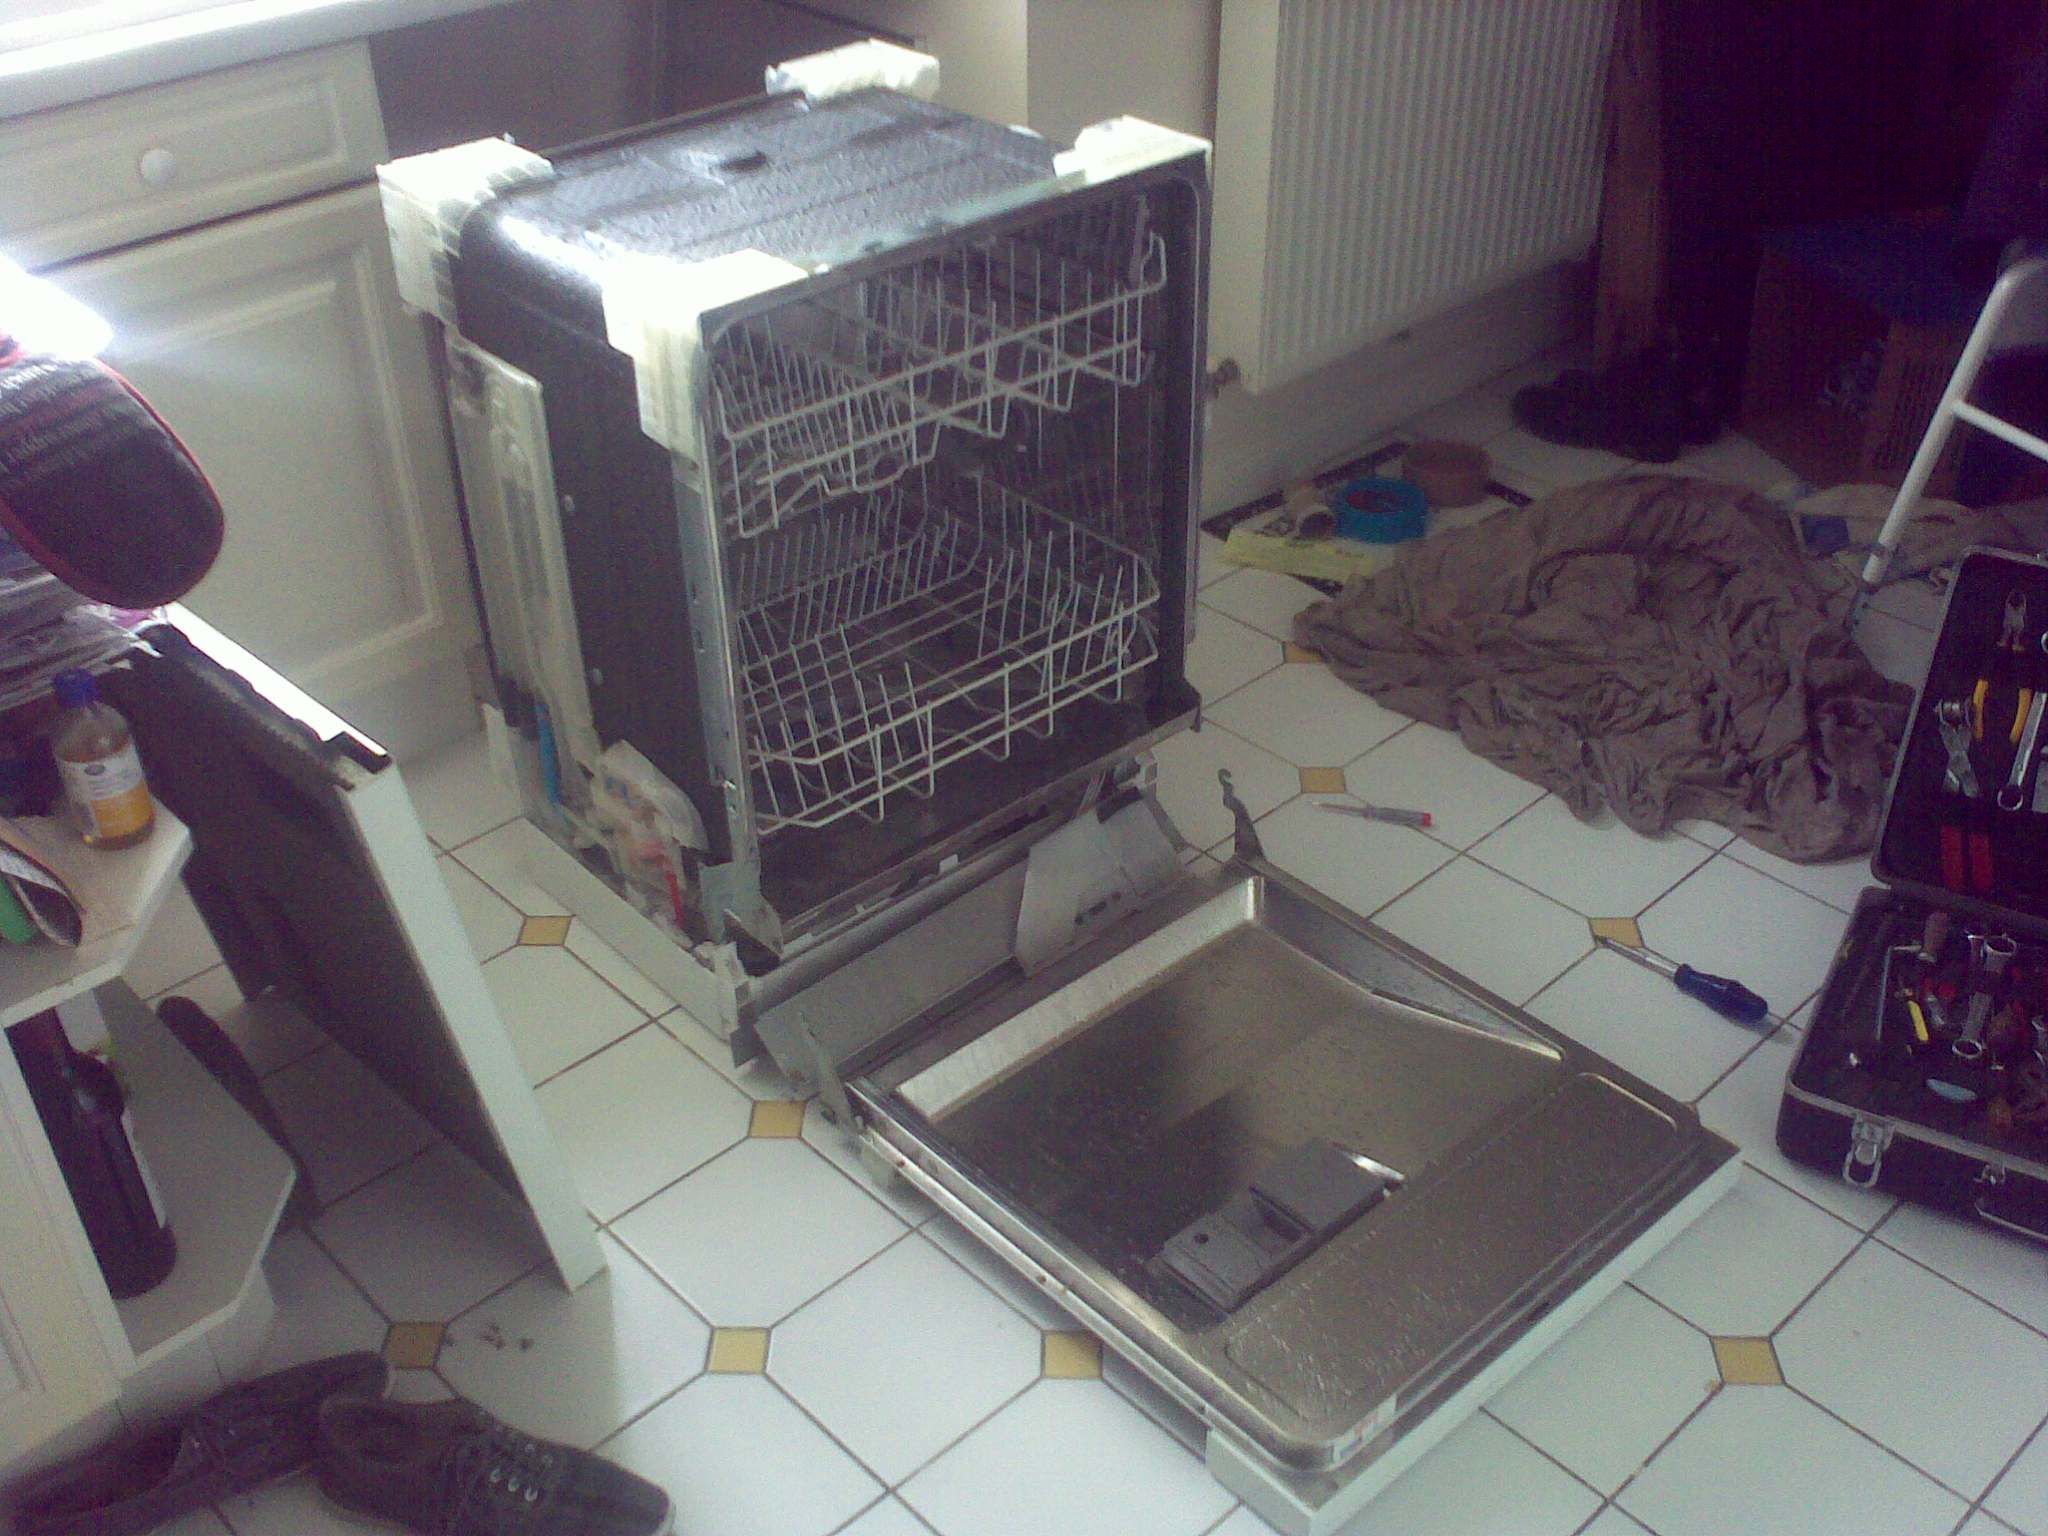 BOSCH DISHWASHER WITH TOP DOOR AND PANELS REMOVED